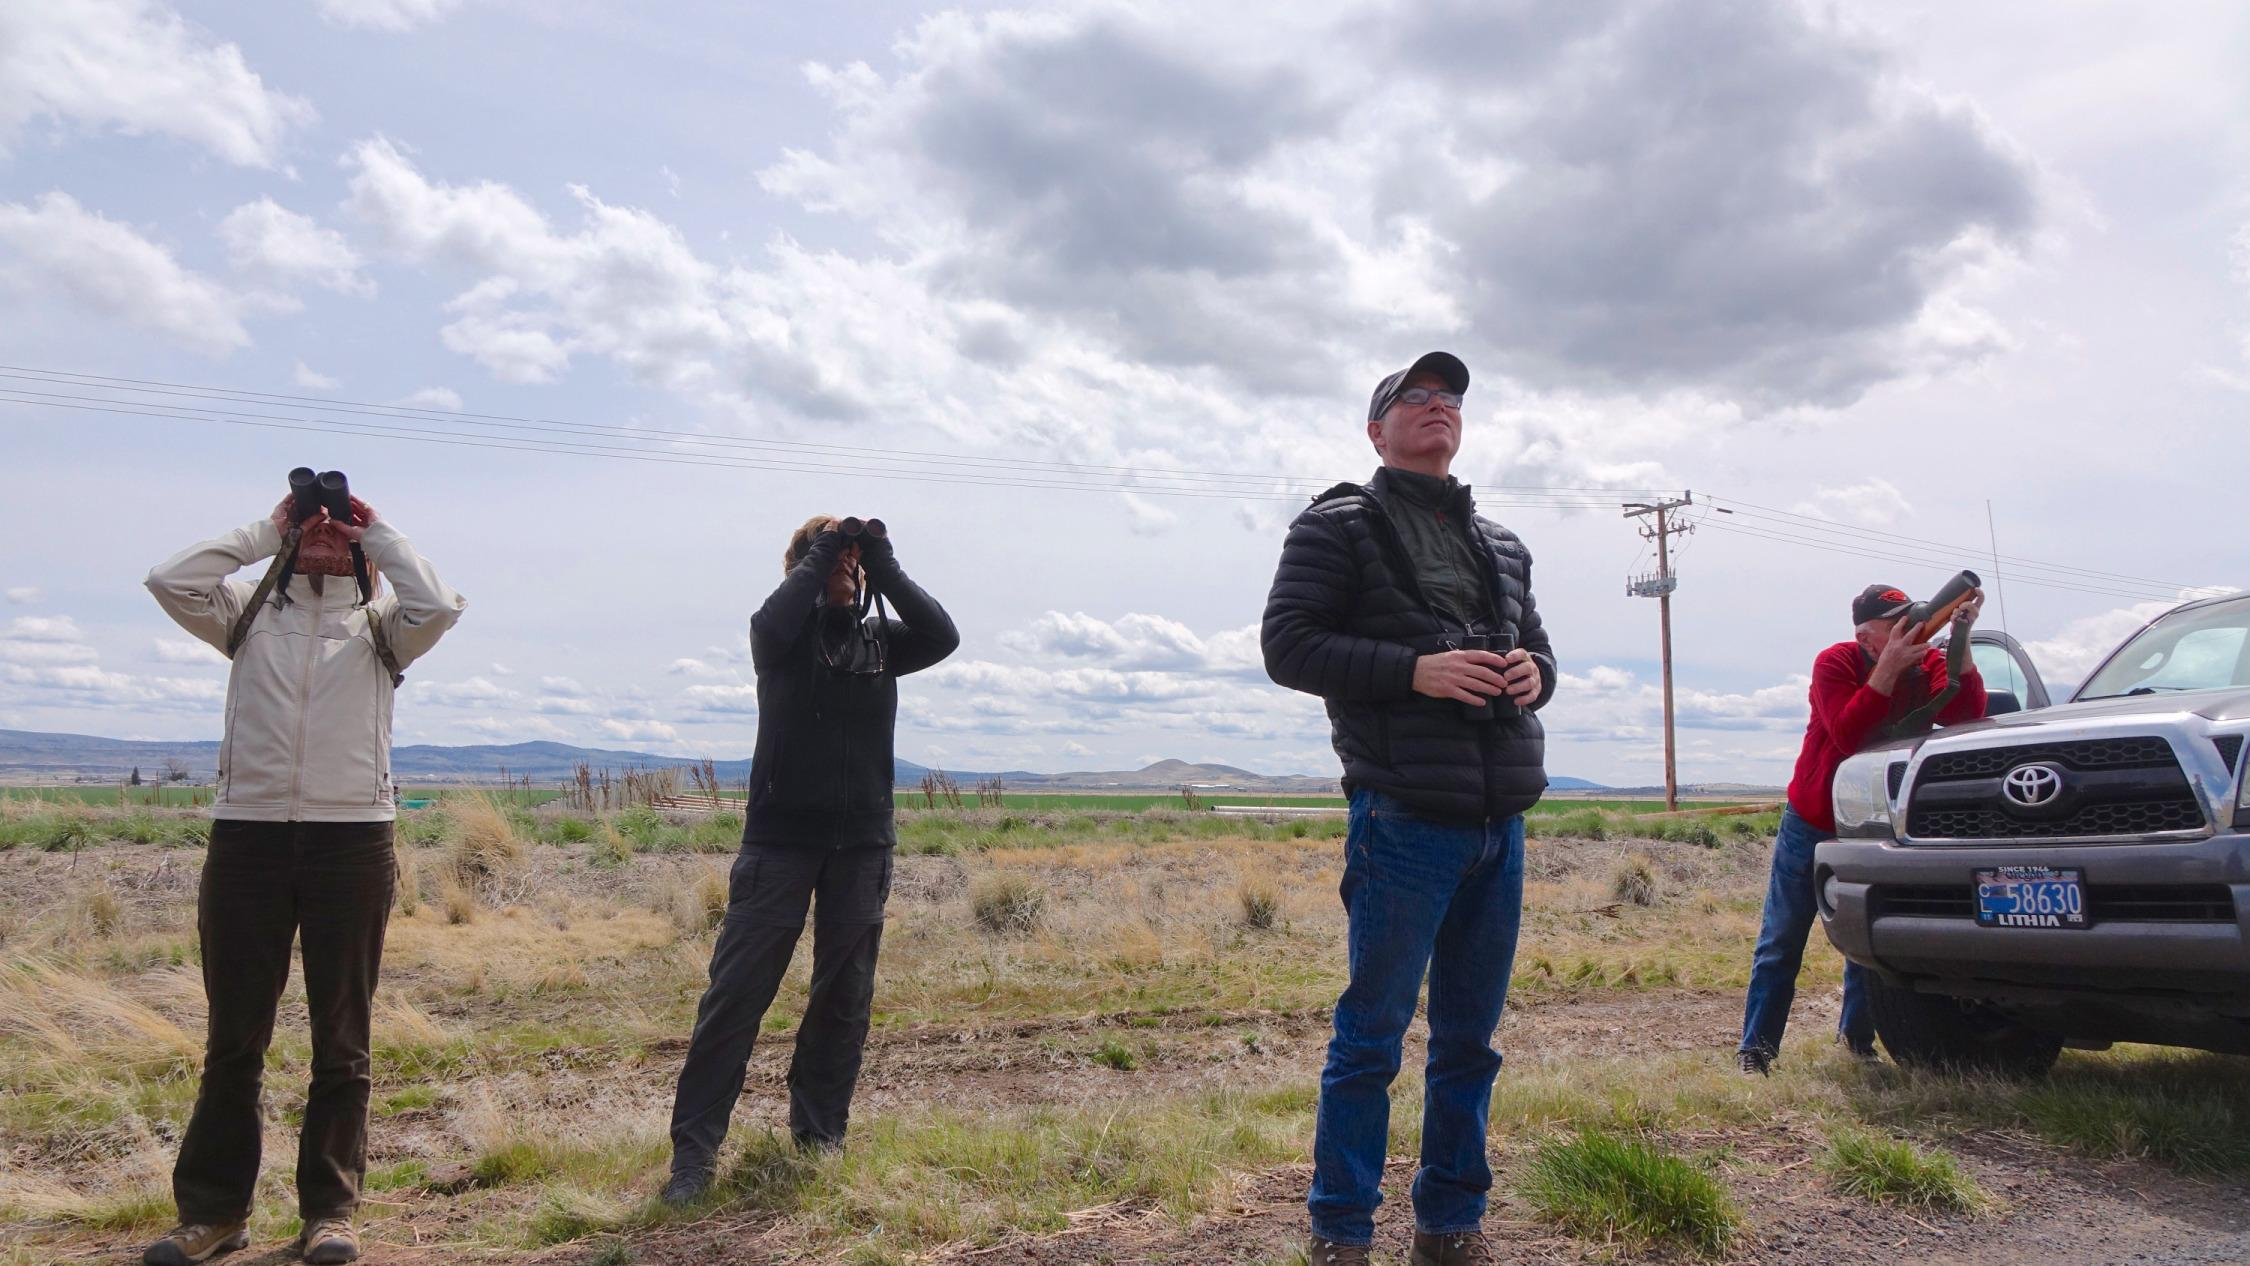 Kevin Spencer (3rd from left) leads a birding field trip at the Klamath refuges.